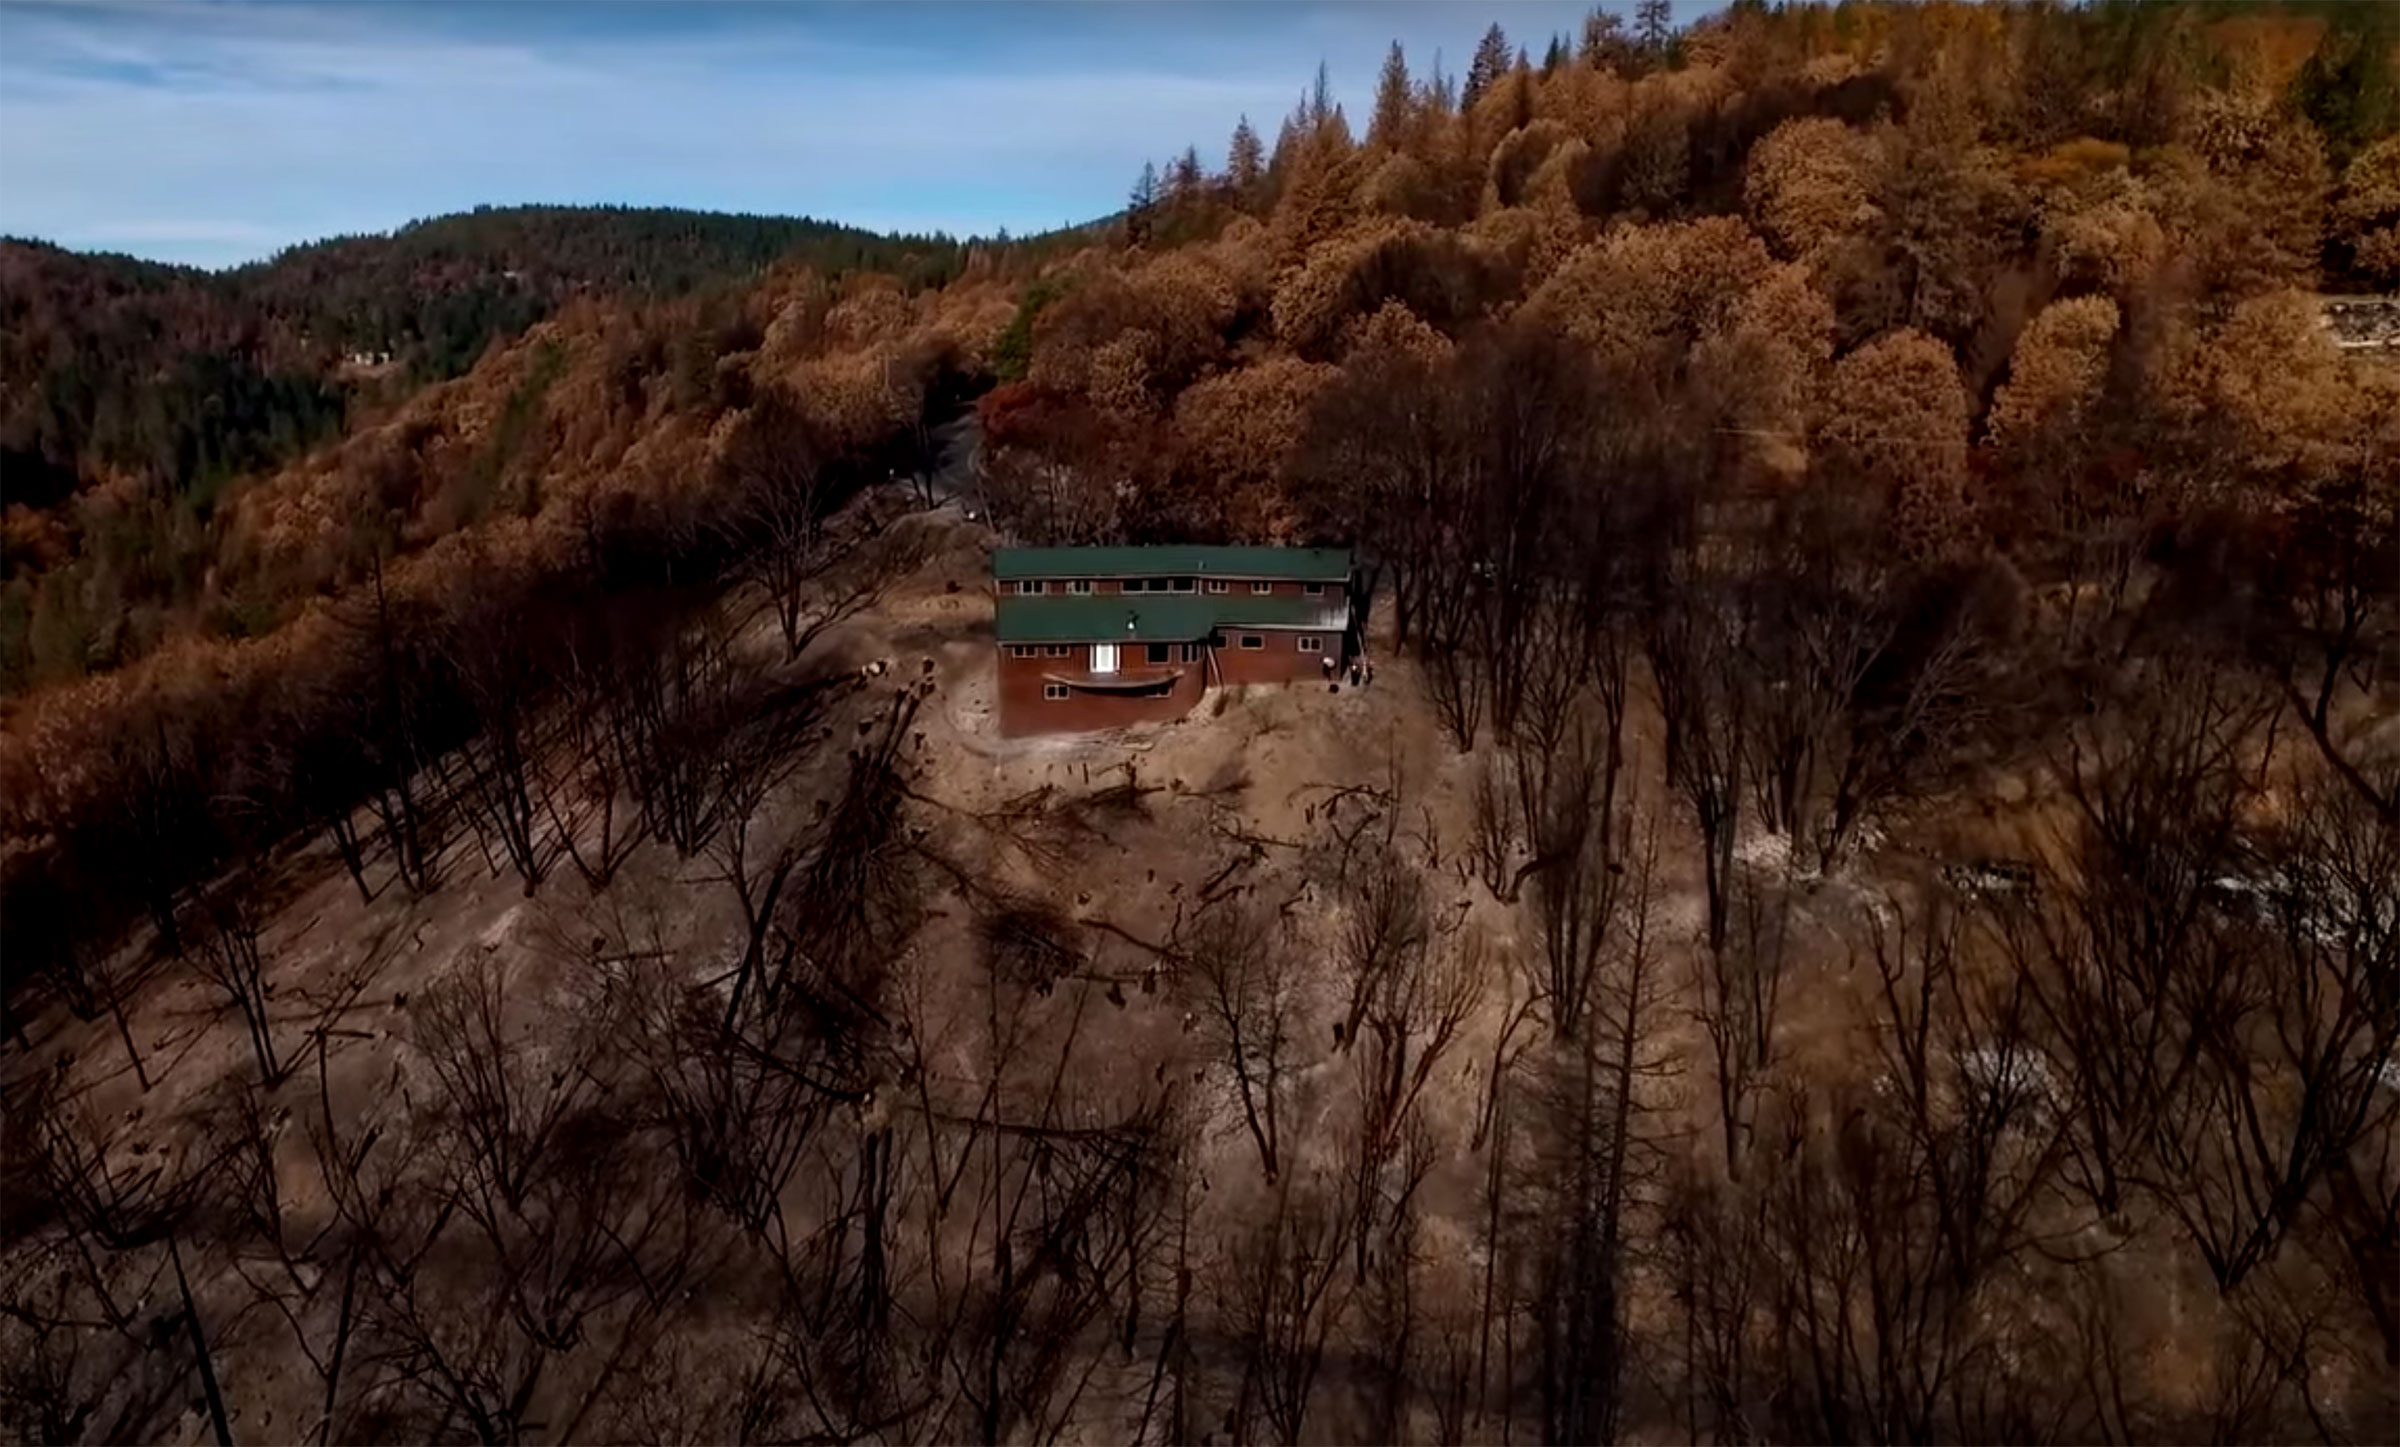 An aerial photo shows Sean Jennings' home surrounded by scorched land after a 2015 wildfire in northern California.